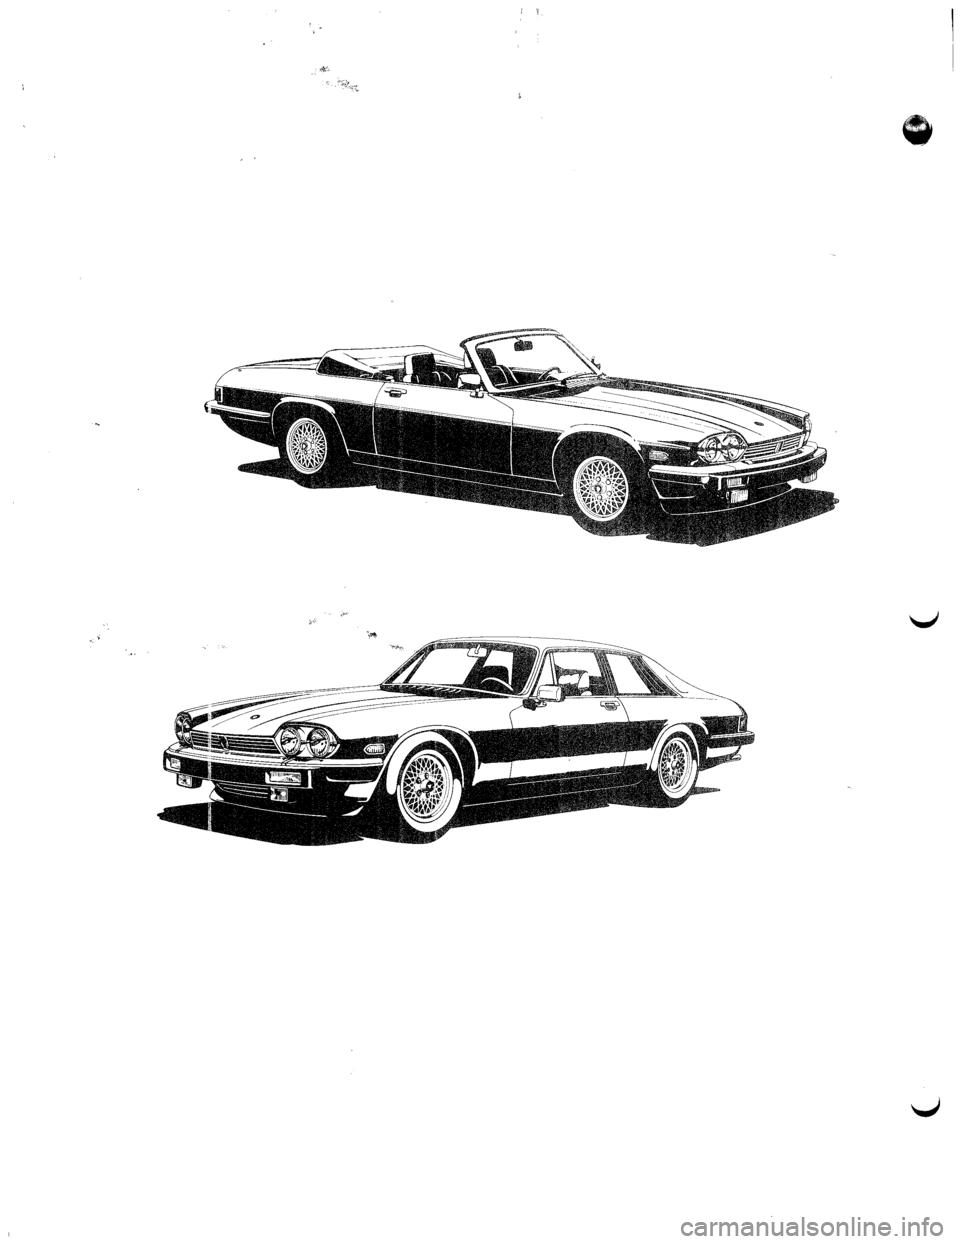 JAGUAR XJS 1990 1.G Update Manual